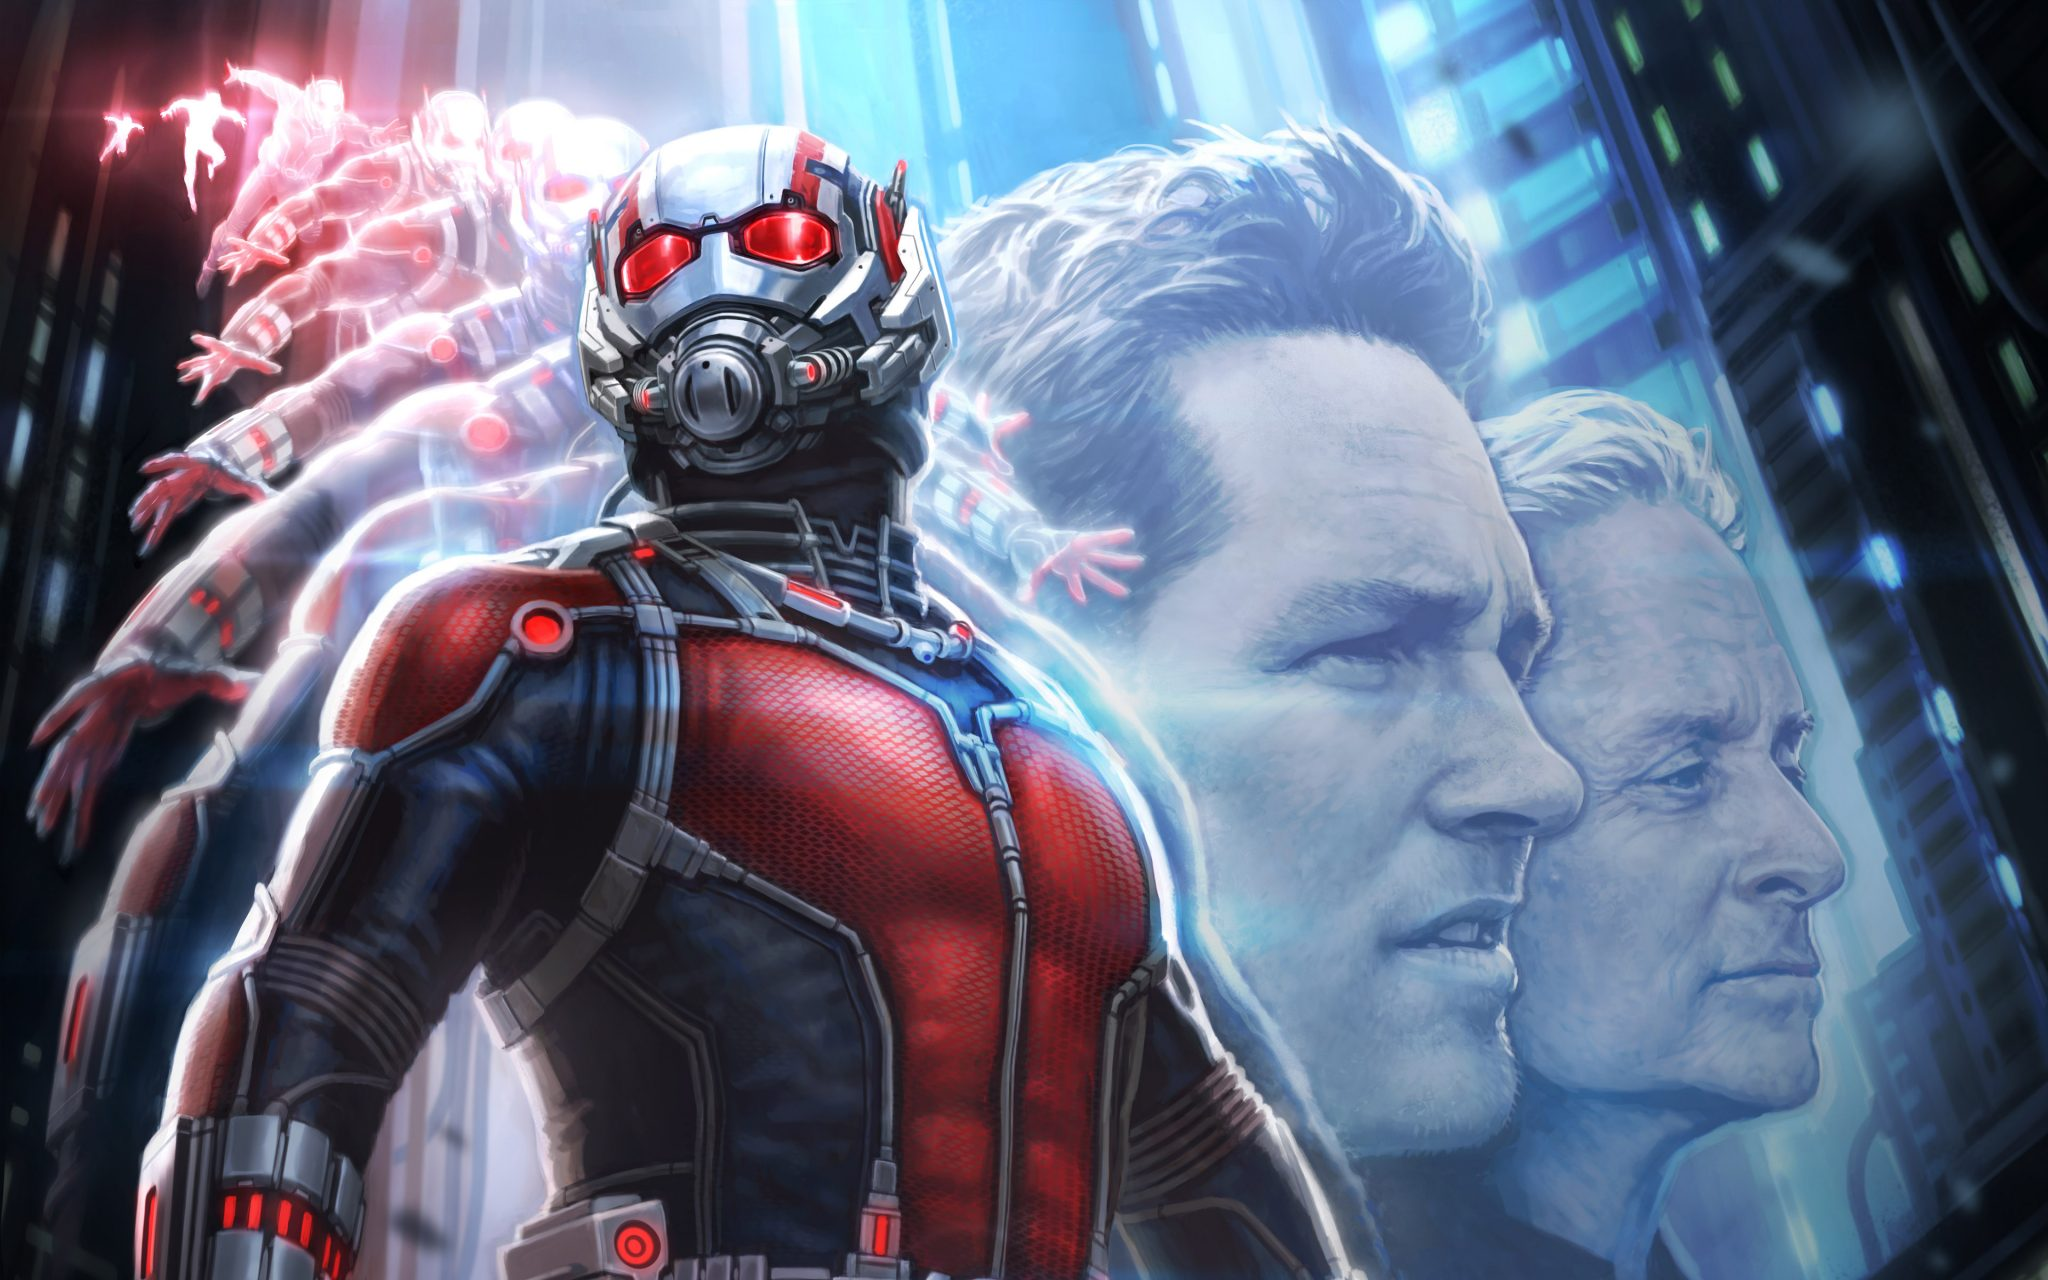 More info on why Edgar Wright left Ant-Man